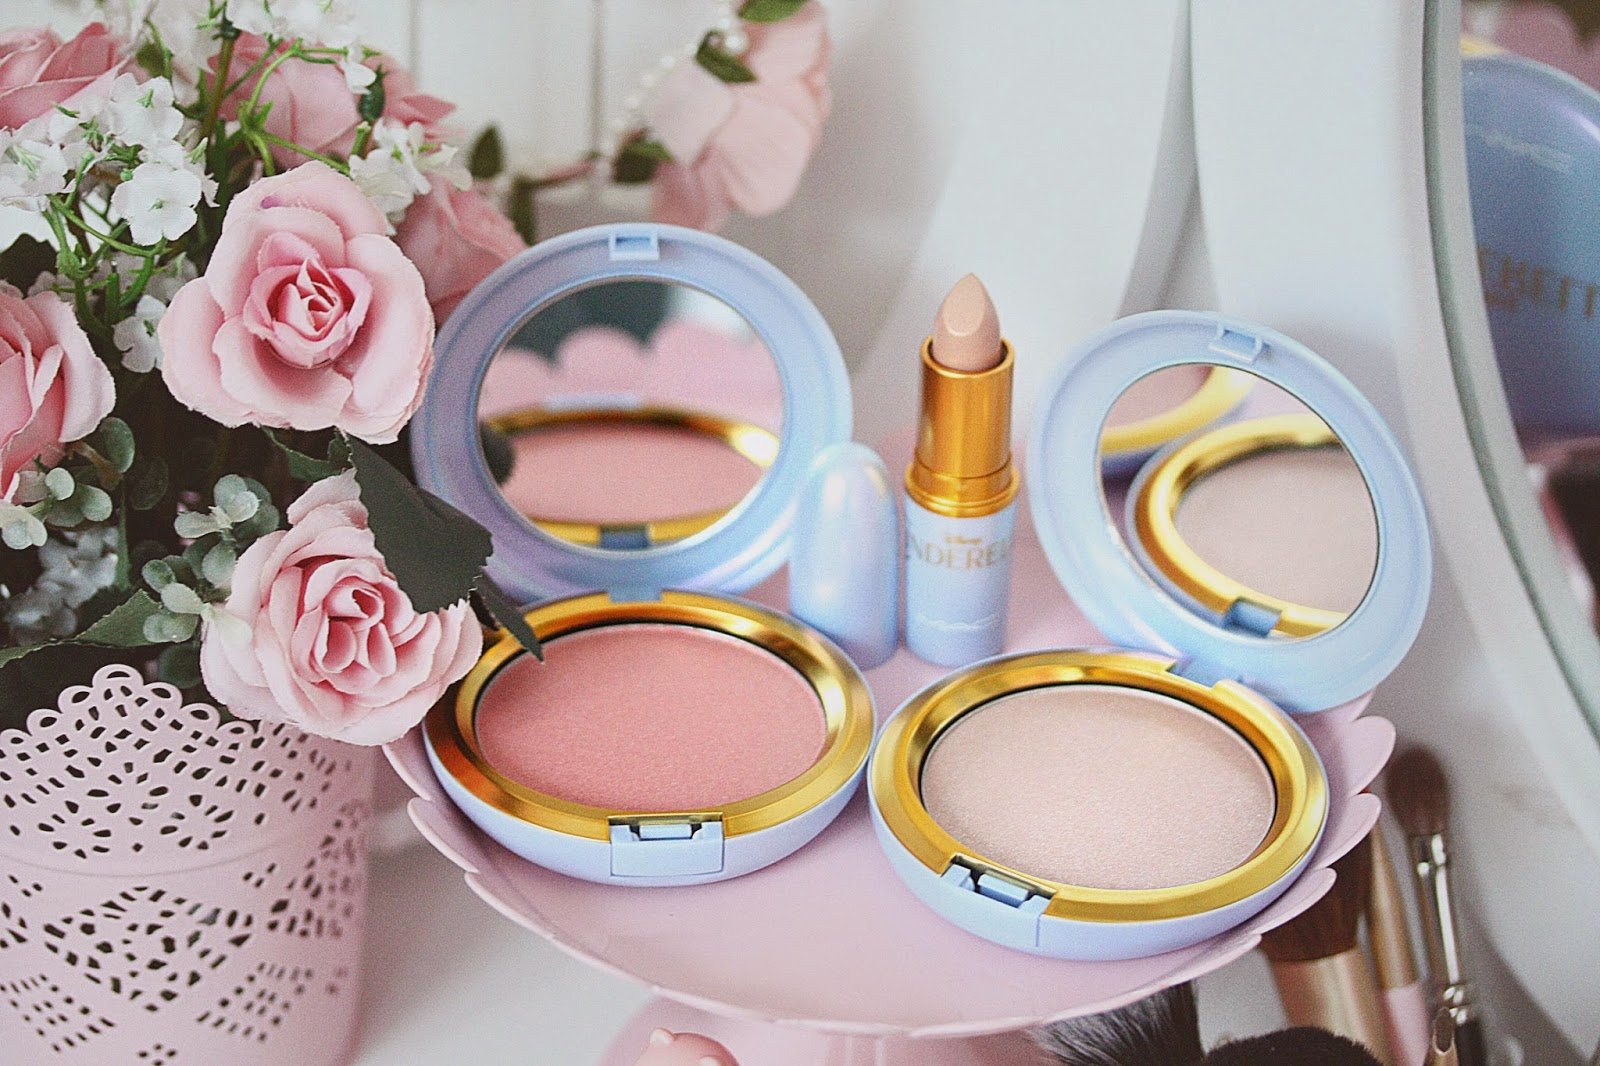 http://www.rosemademoiselle.com/2015/03/mac-la-collection-cendrillon.html